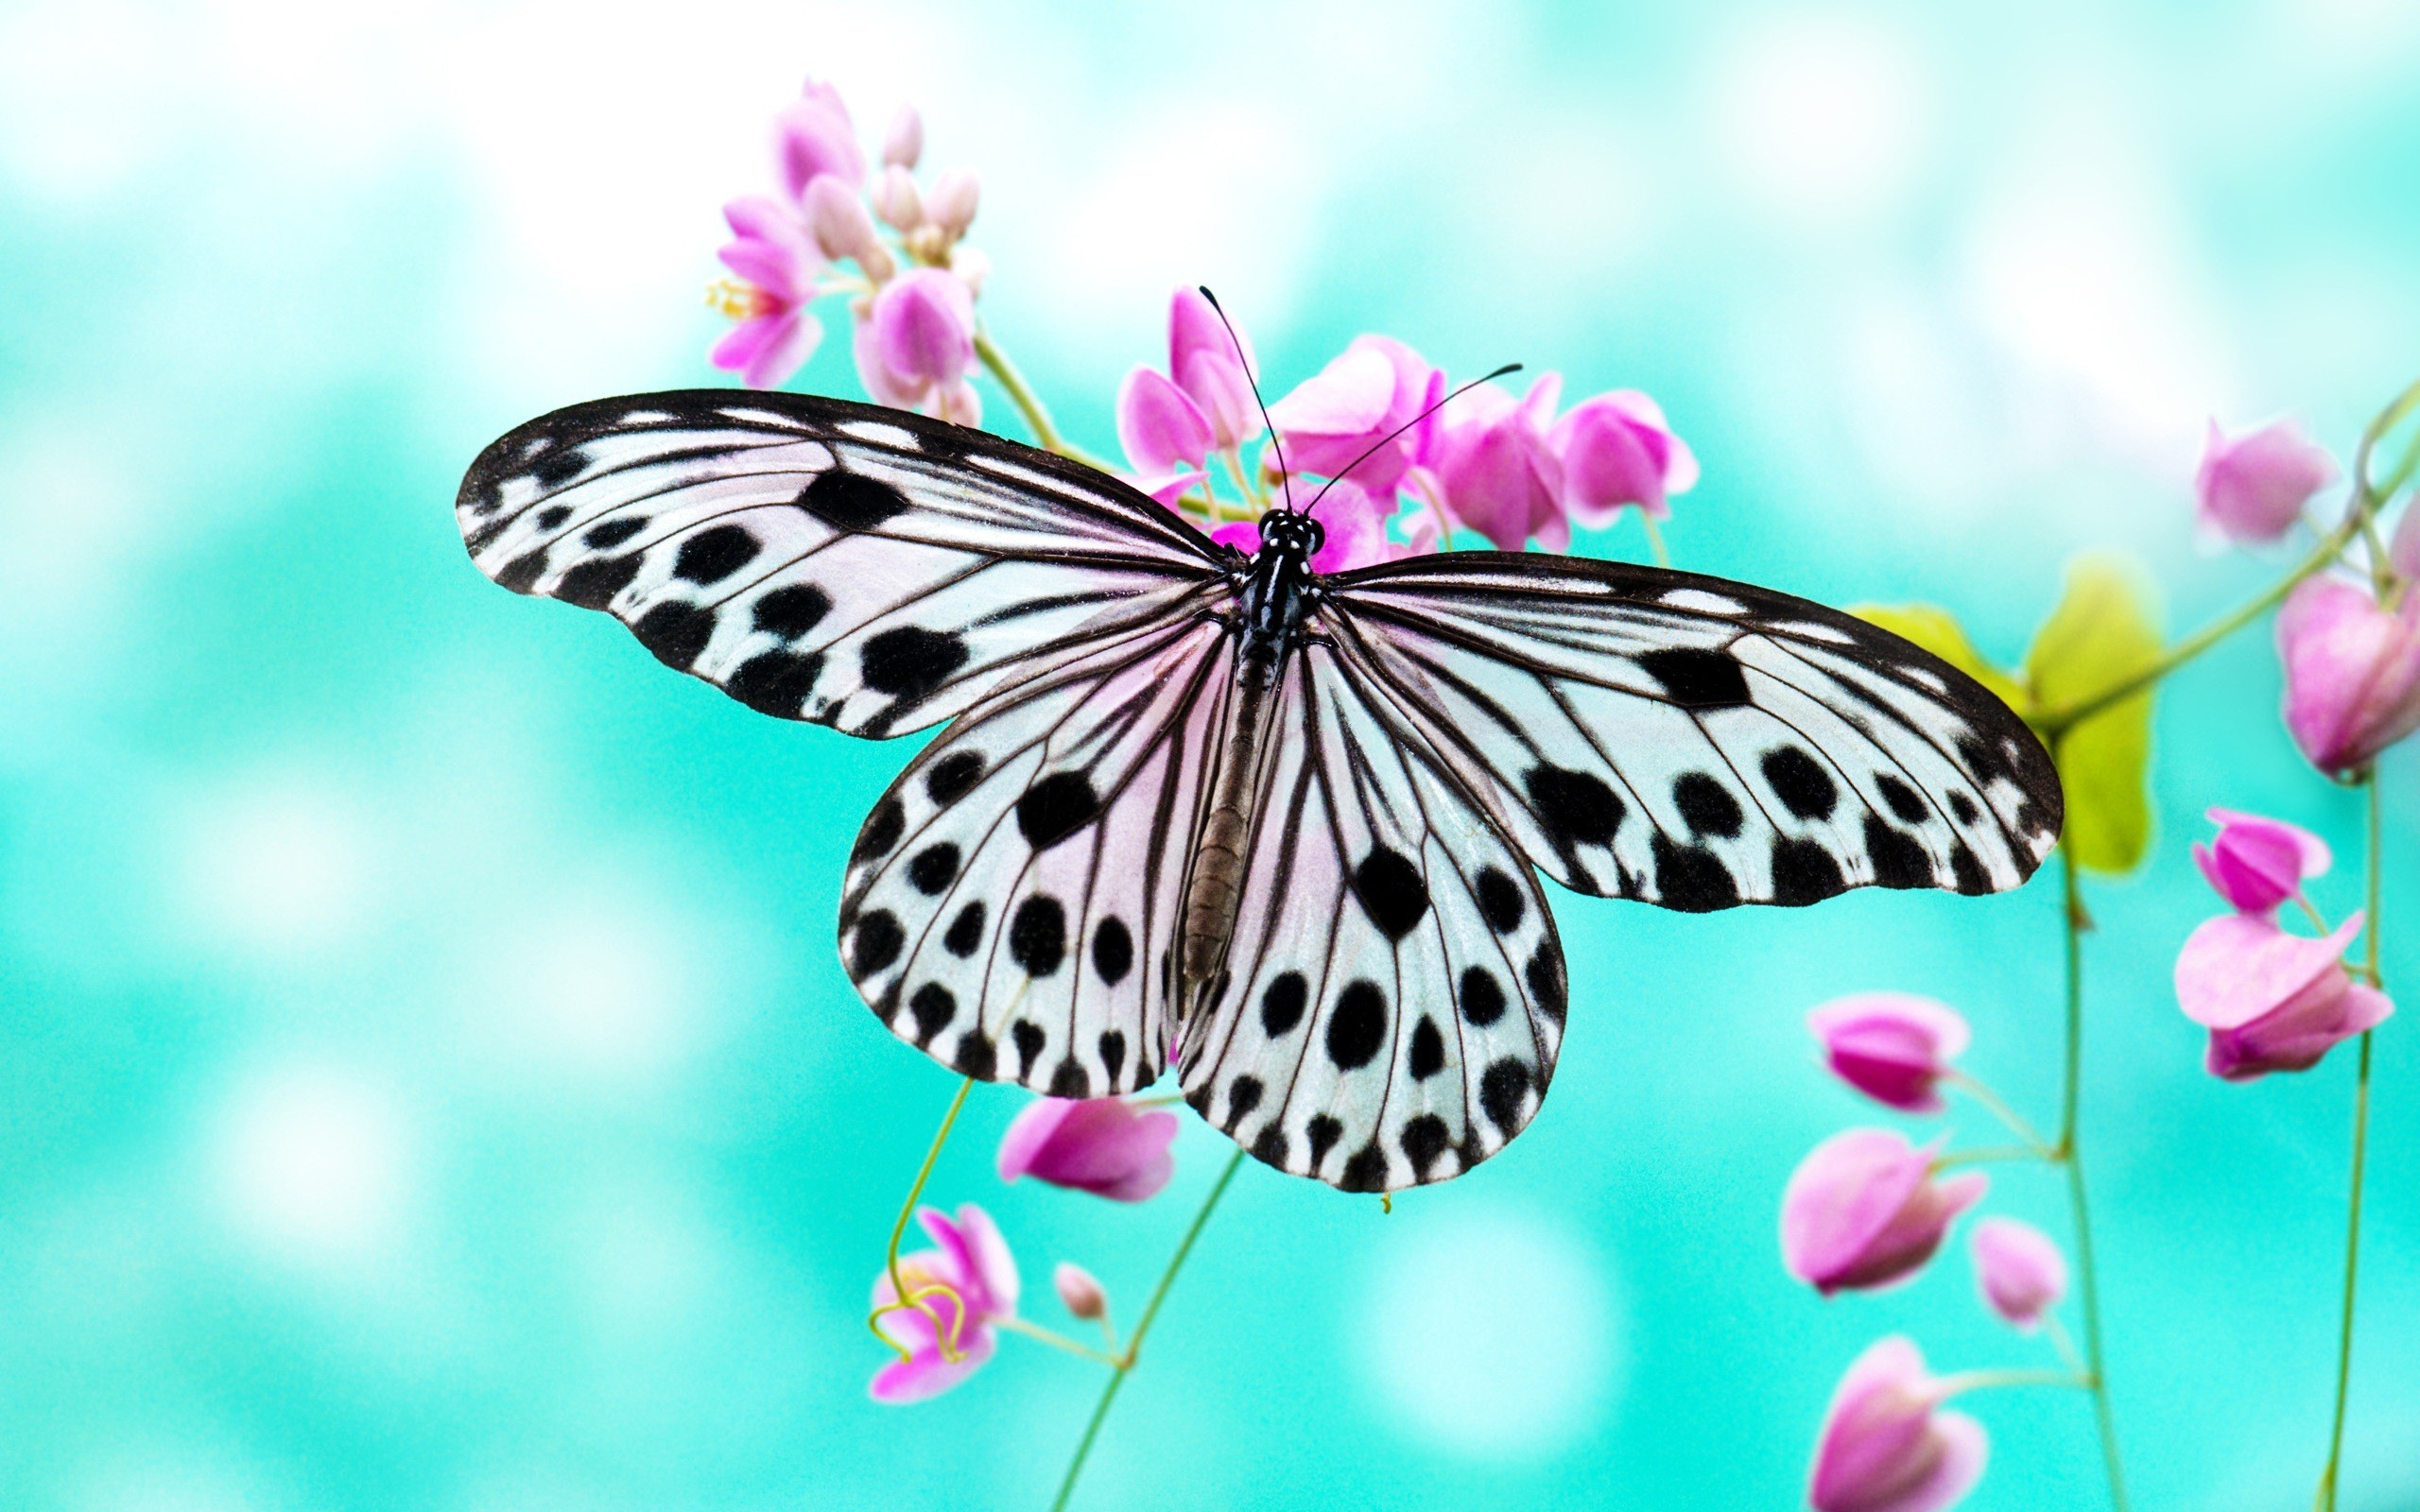 75 Butterfly Hd Wallpapers on WallpaperPlay 2560x1600